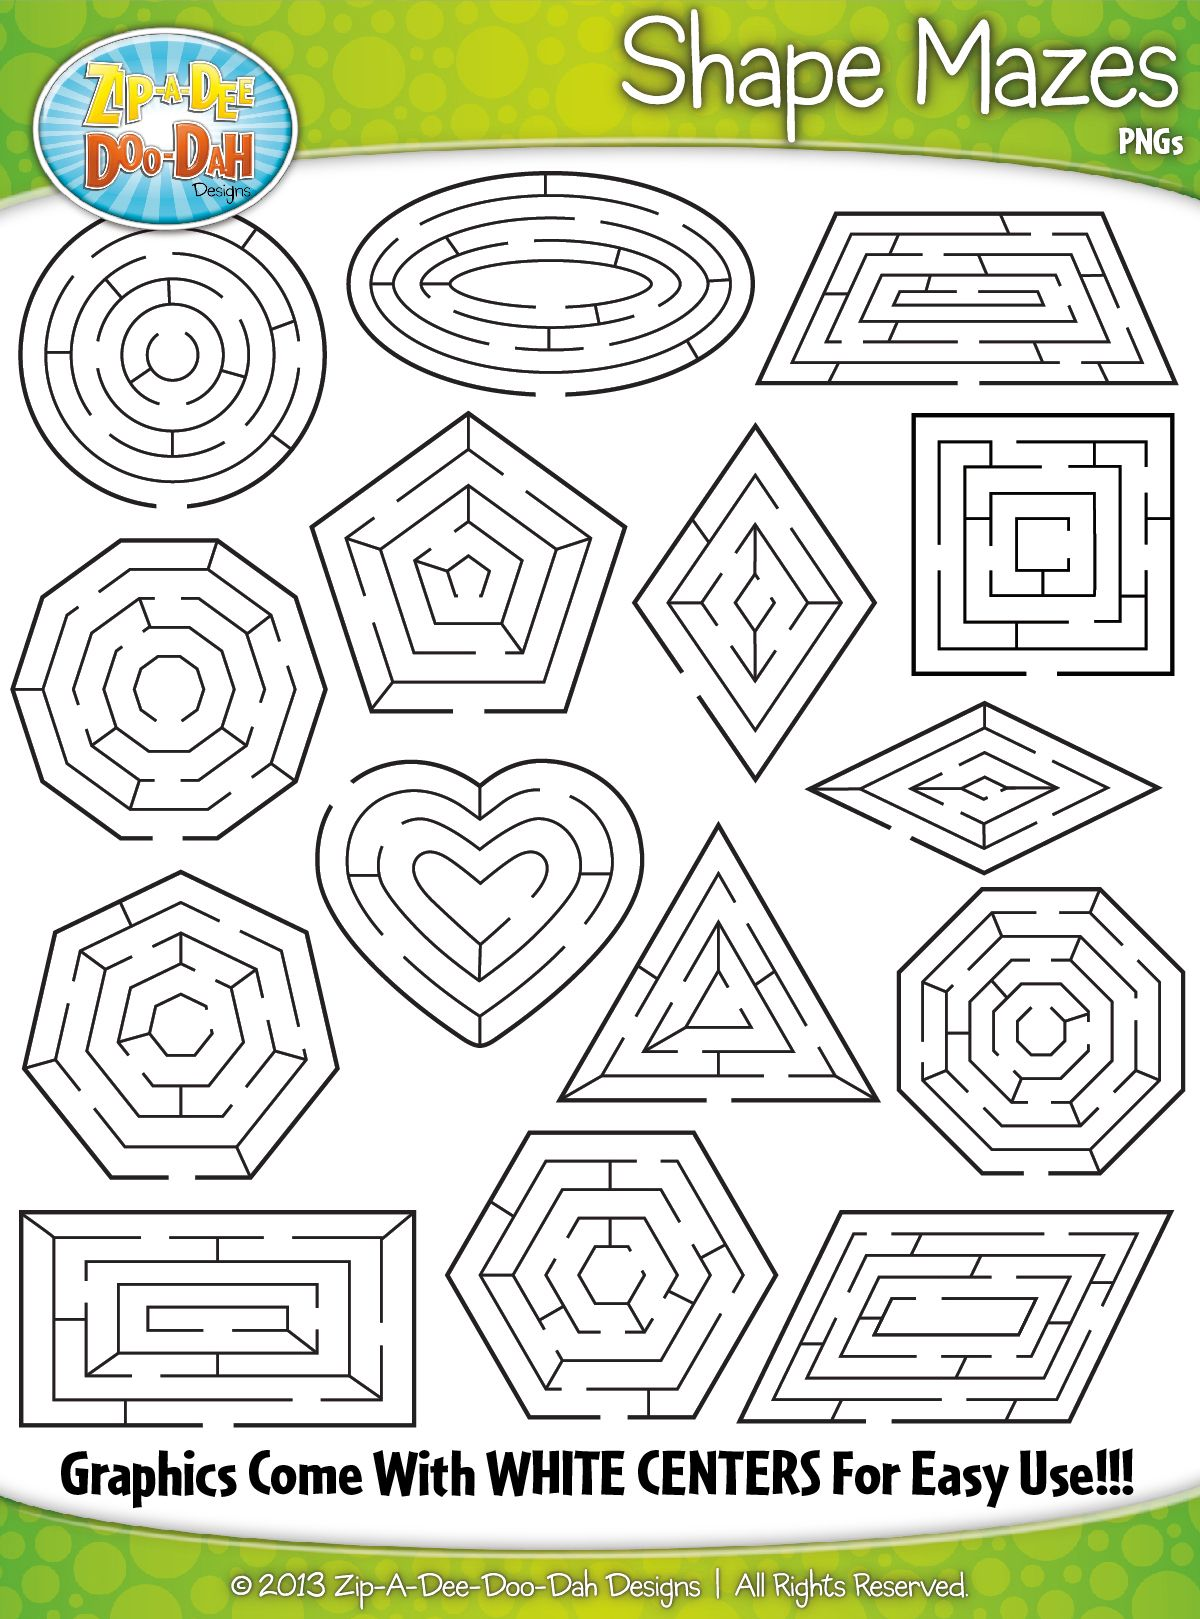 2d Shapes Shaped Mazes Clipart Zip A Dee Doo Dah Designs